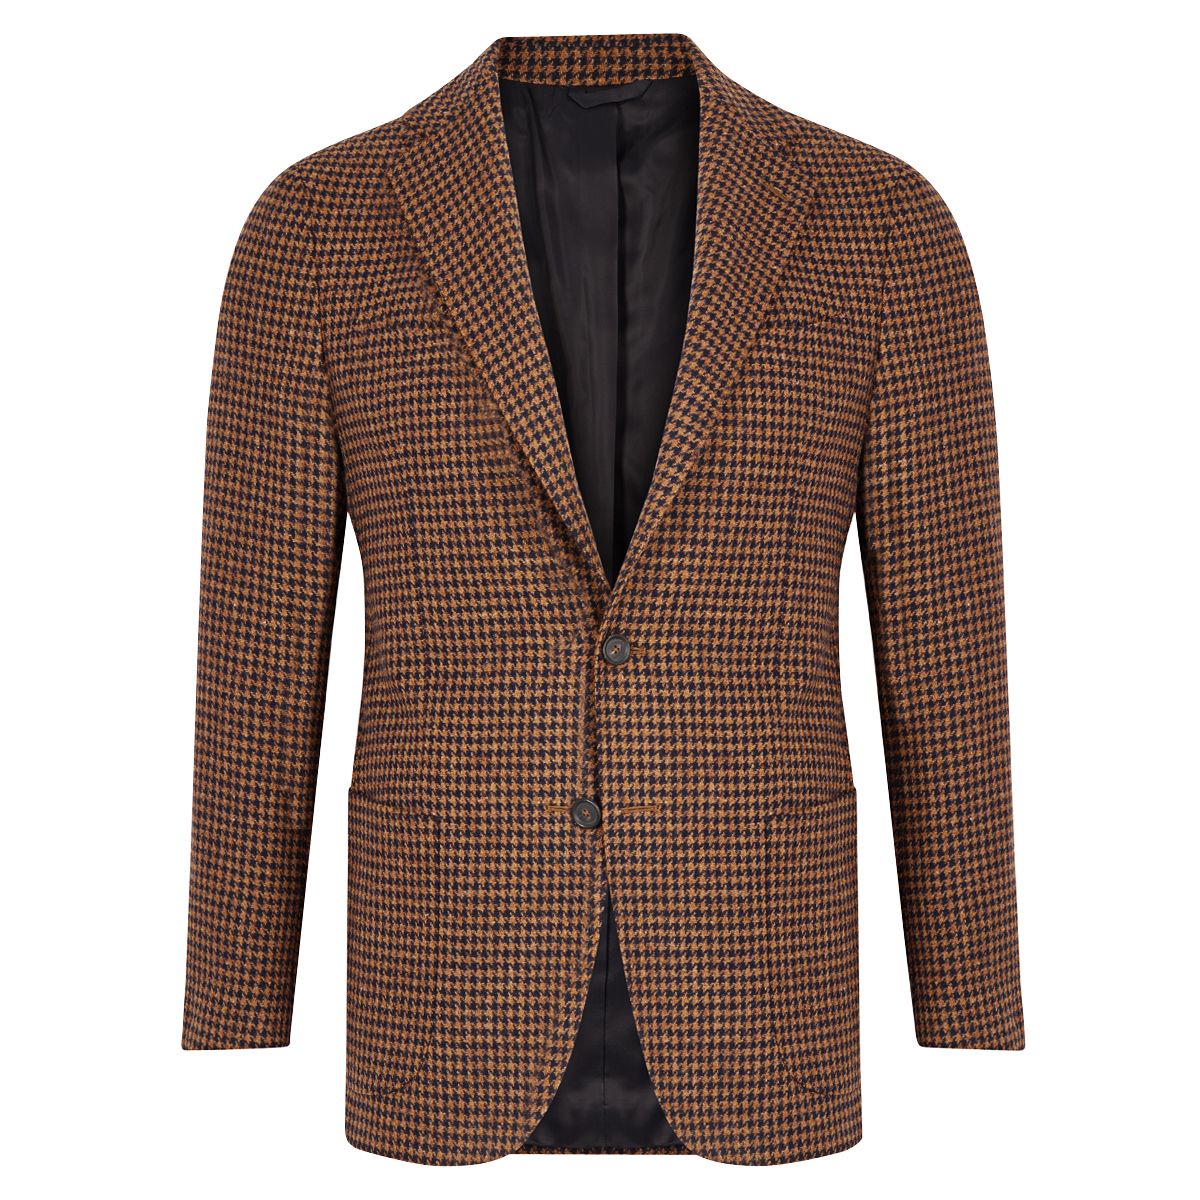 Light Brown Houndstooth Jacket